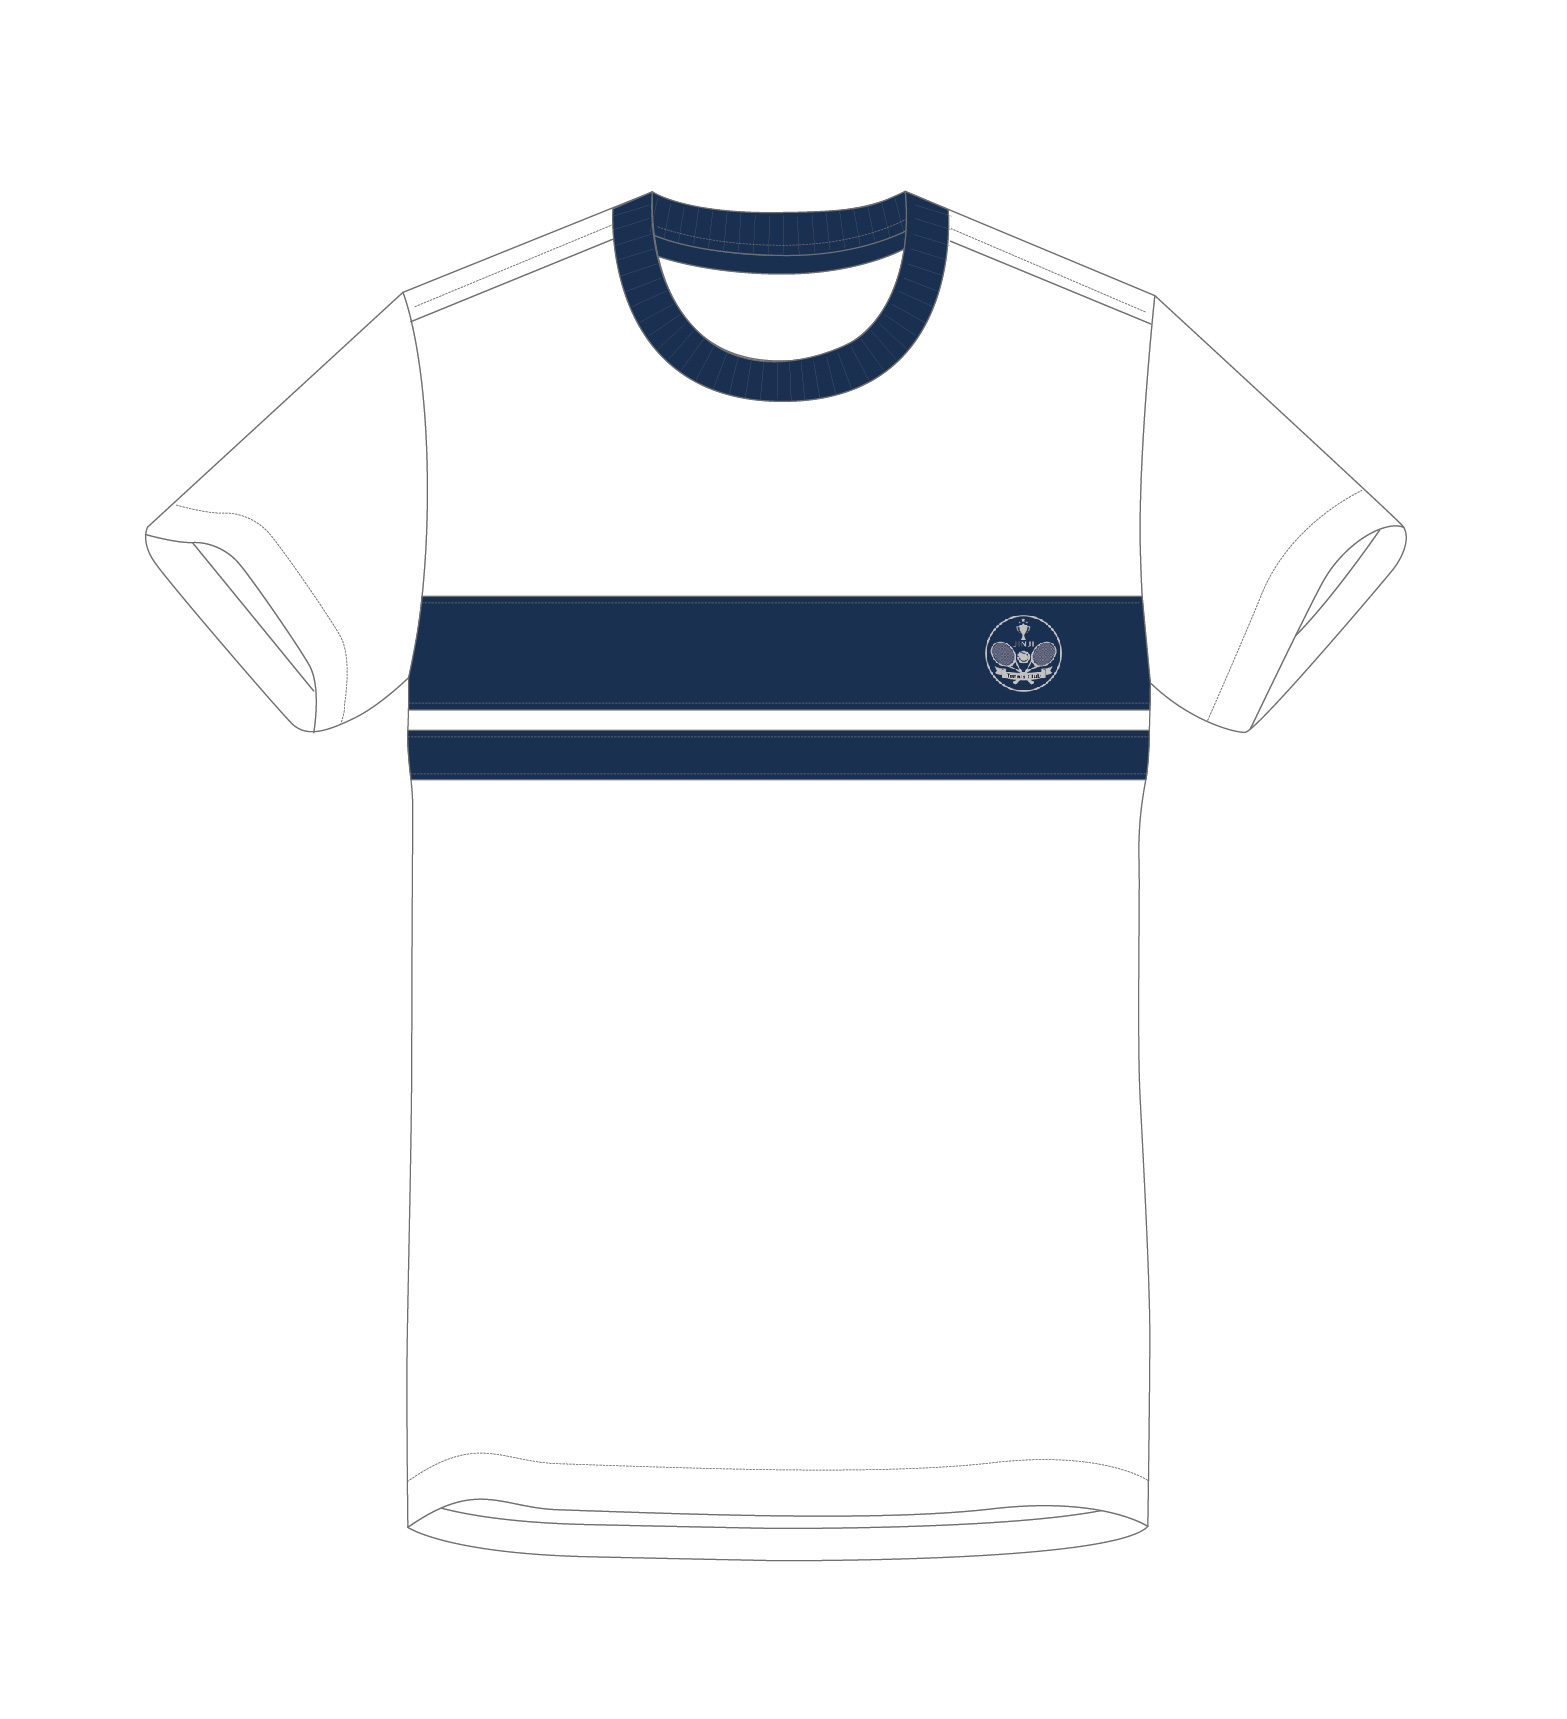 white and blue jersey design sketch